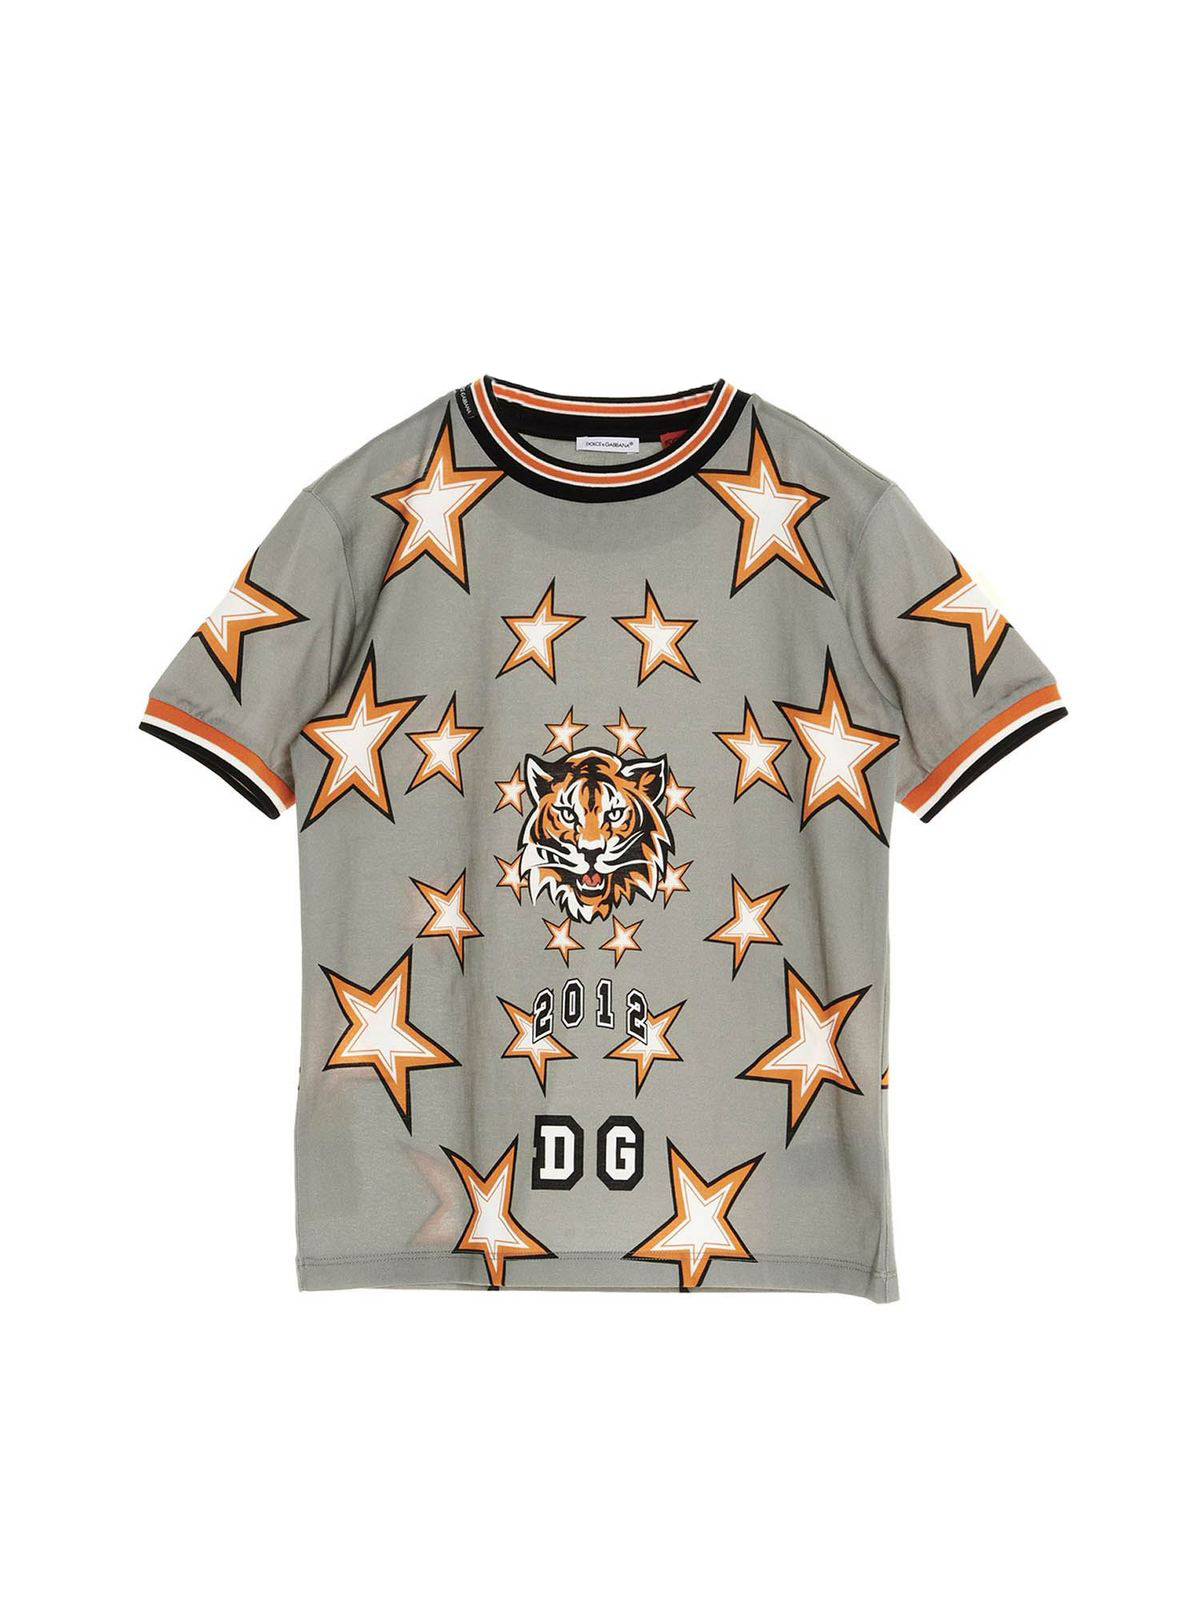 DOLCE & GABBANA JR DG TIGER T-SHIRT IN GREY